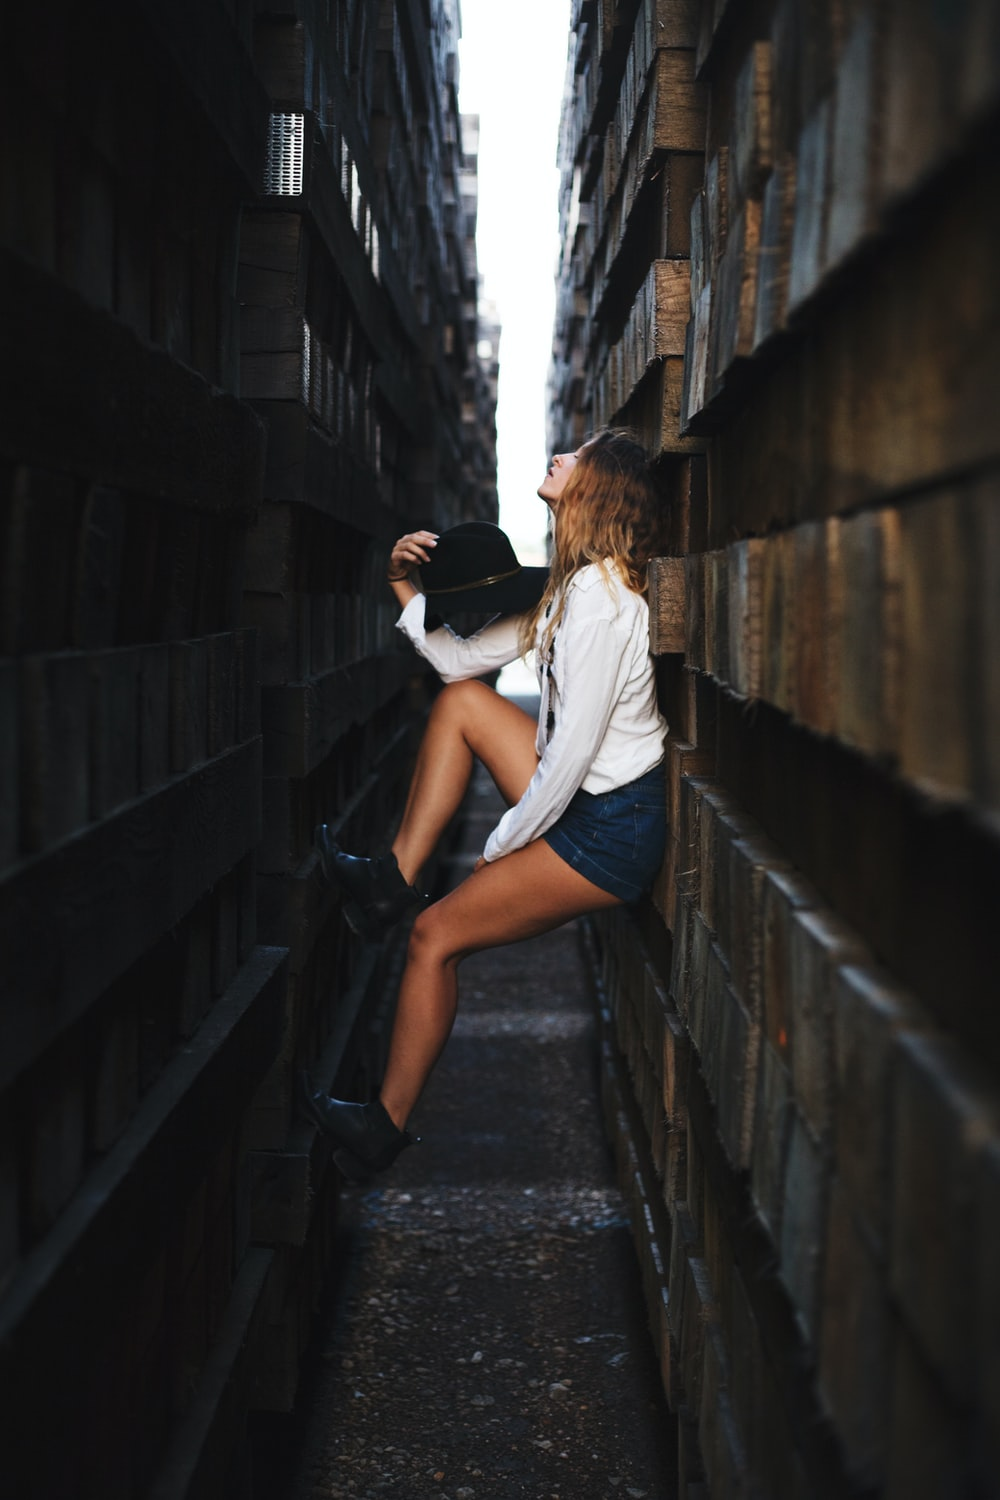 woman holding her hat leaning on brick wall